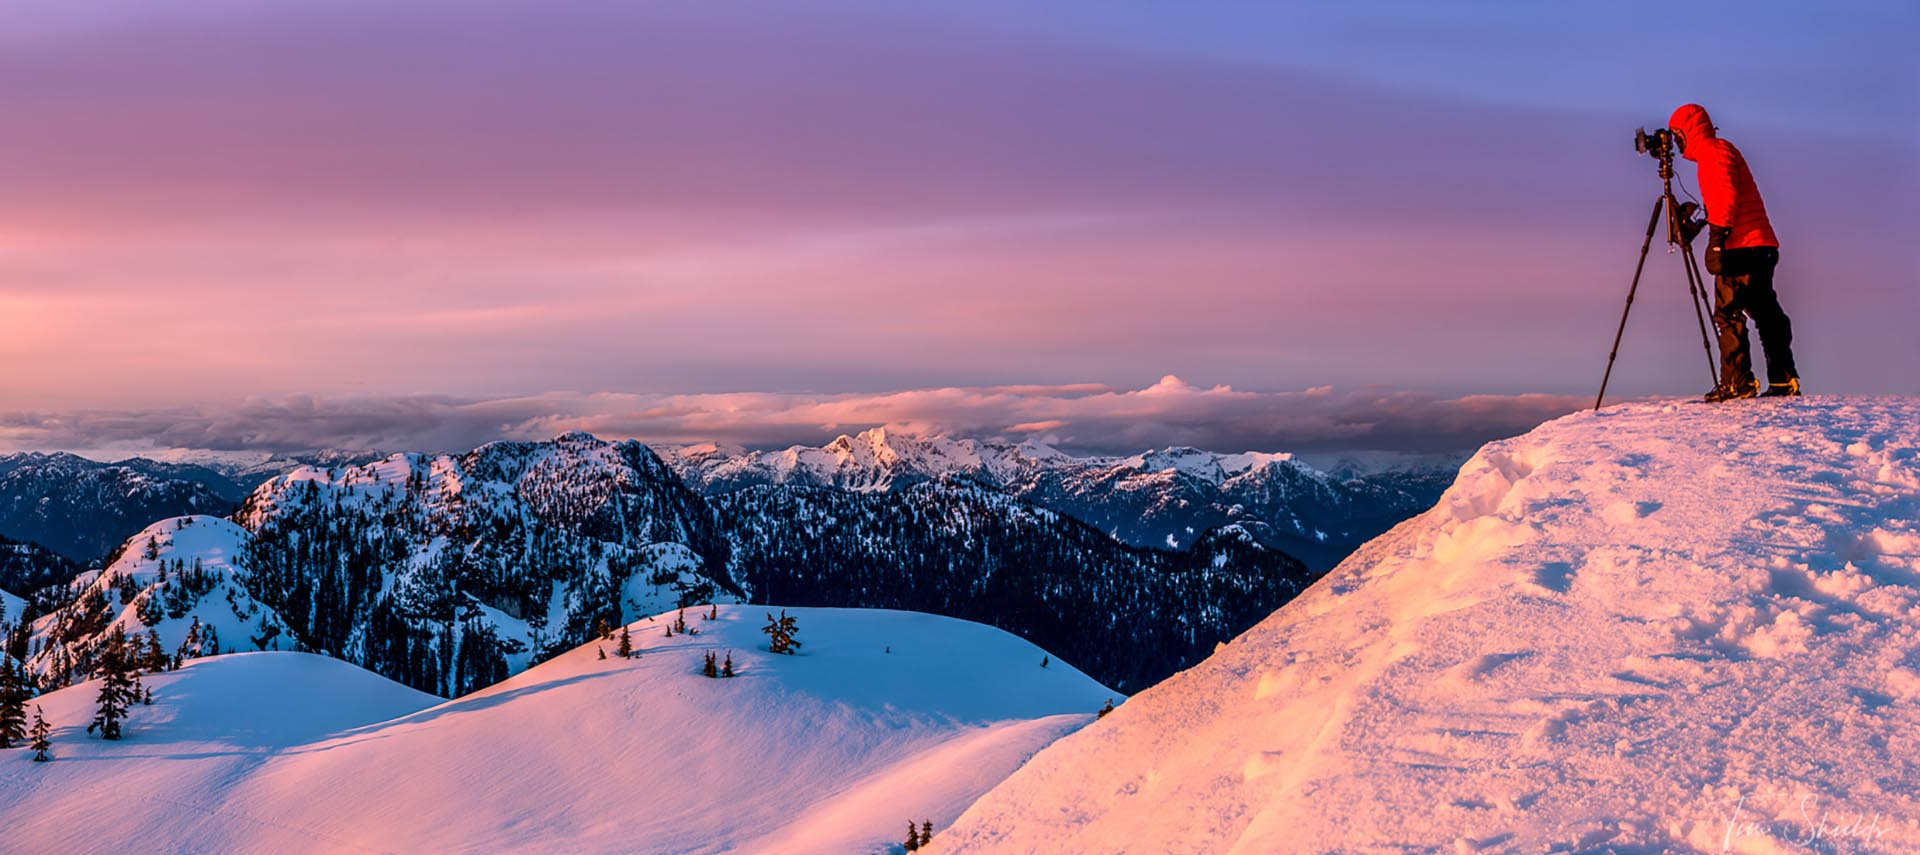 5 Tips for backcountry winter photography